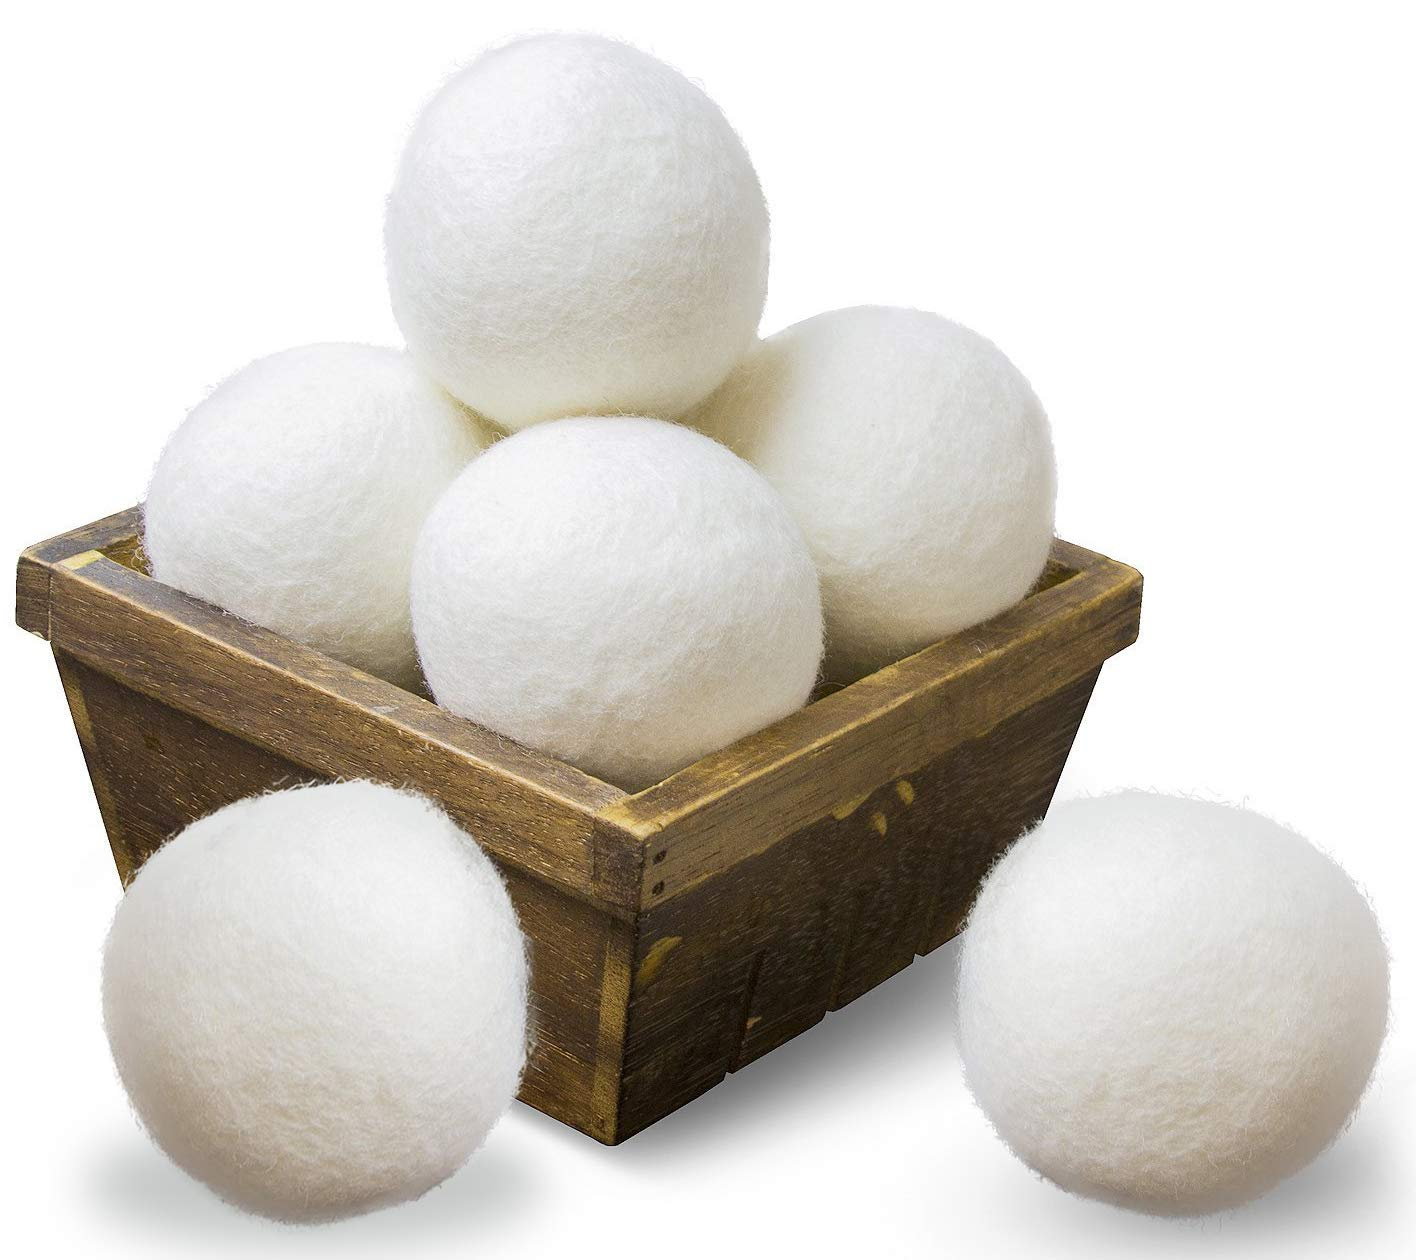 SnugPad Wool Dryer Balls XL Size 6 Pack, Natural Fabric Softener 100% Organic Premium New Zealand Wool, Chemical Free and Reduces Wrinkles, 1000+ Loads, Baby Safe, Saving Energy & Time, White 6 Count